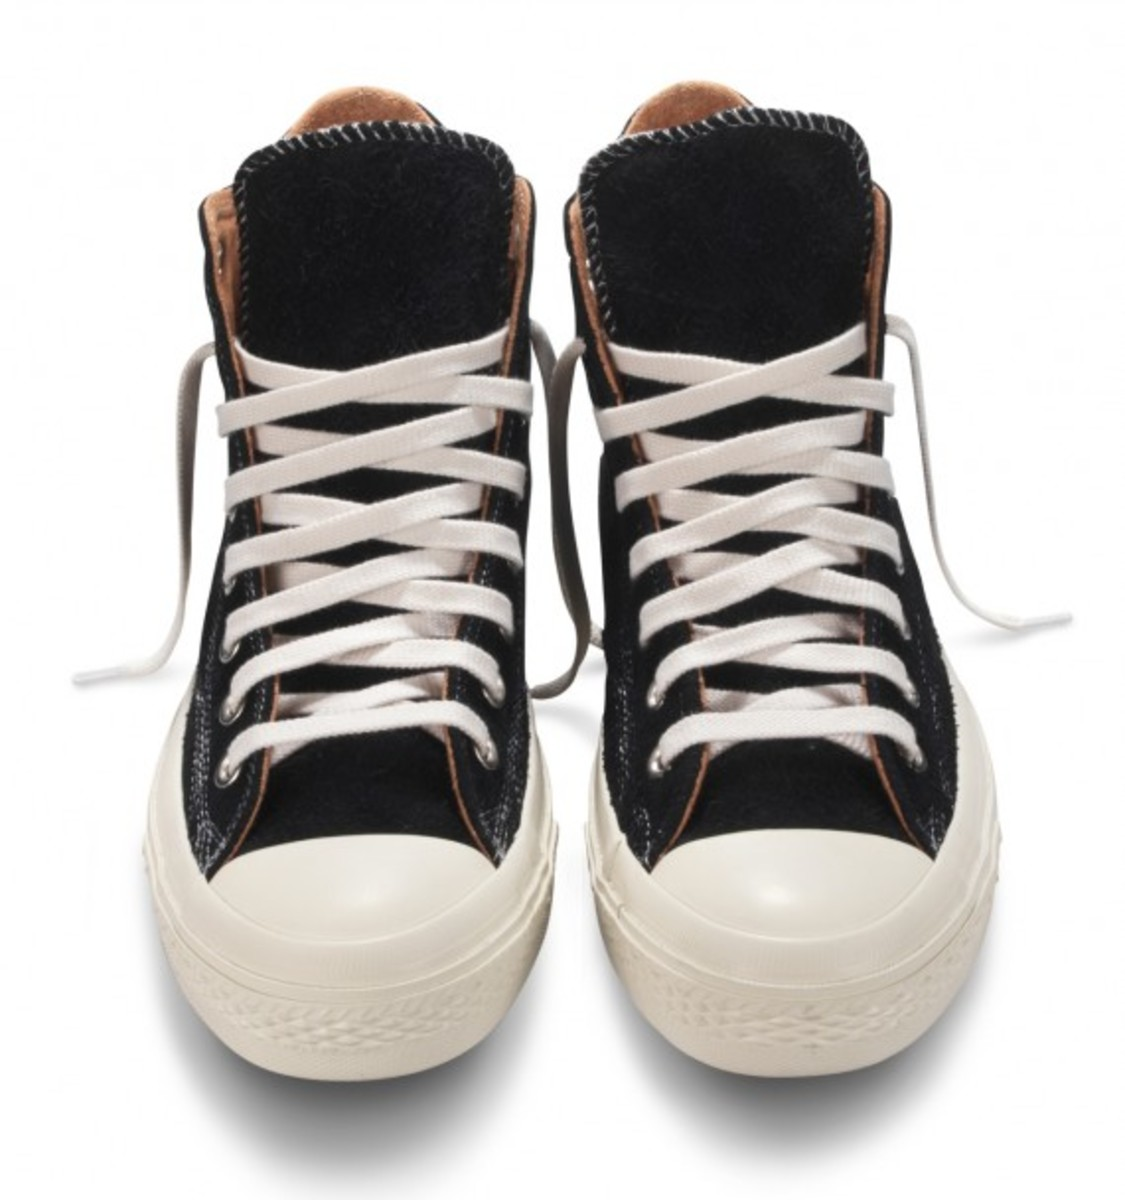 the-hideout-converse-chuck-taylor-all-star-high-03